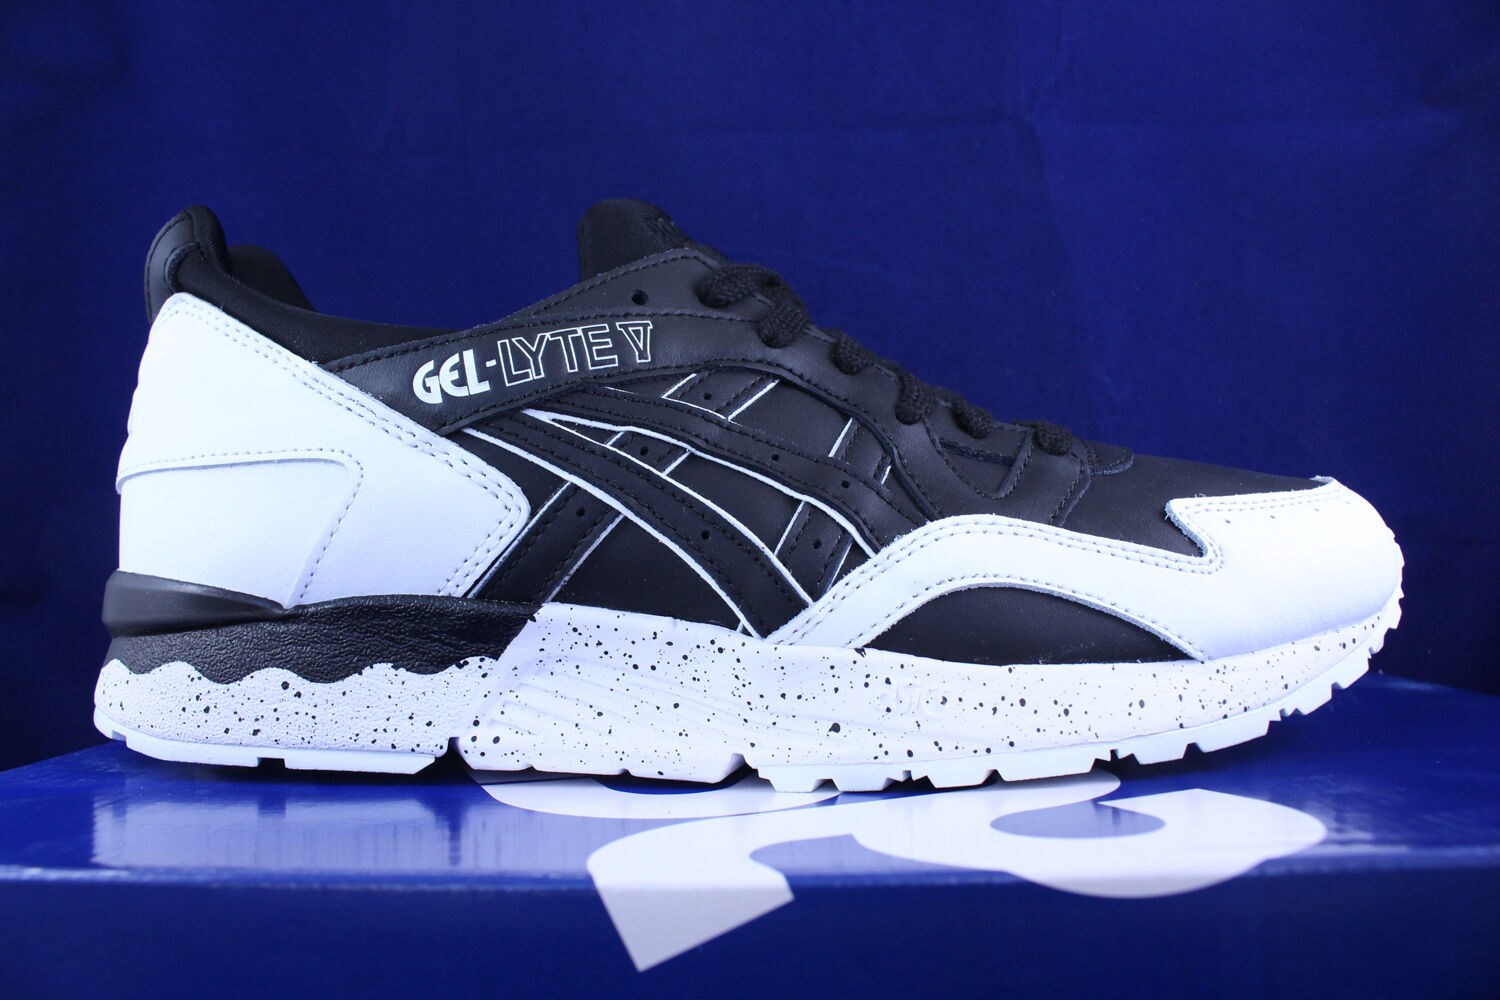 ASICS GEL LYTE V 5 BLACK WHITE SPECKLE SZ OREO PACK H6Q1L 9090 SZ SPECKLE 8.5 1a4eab